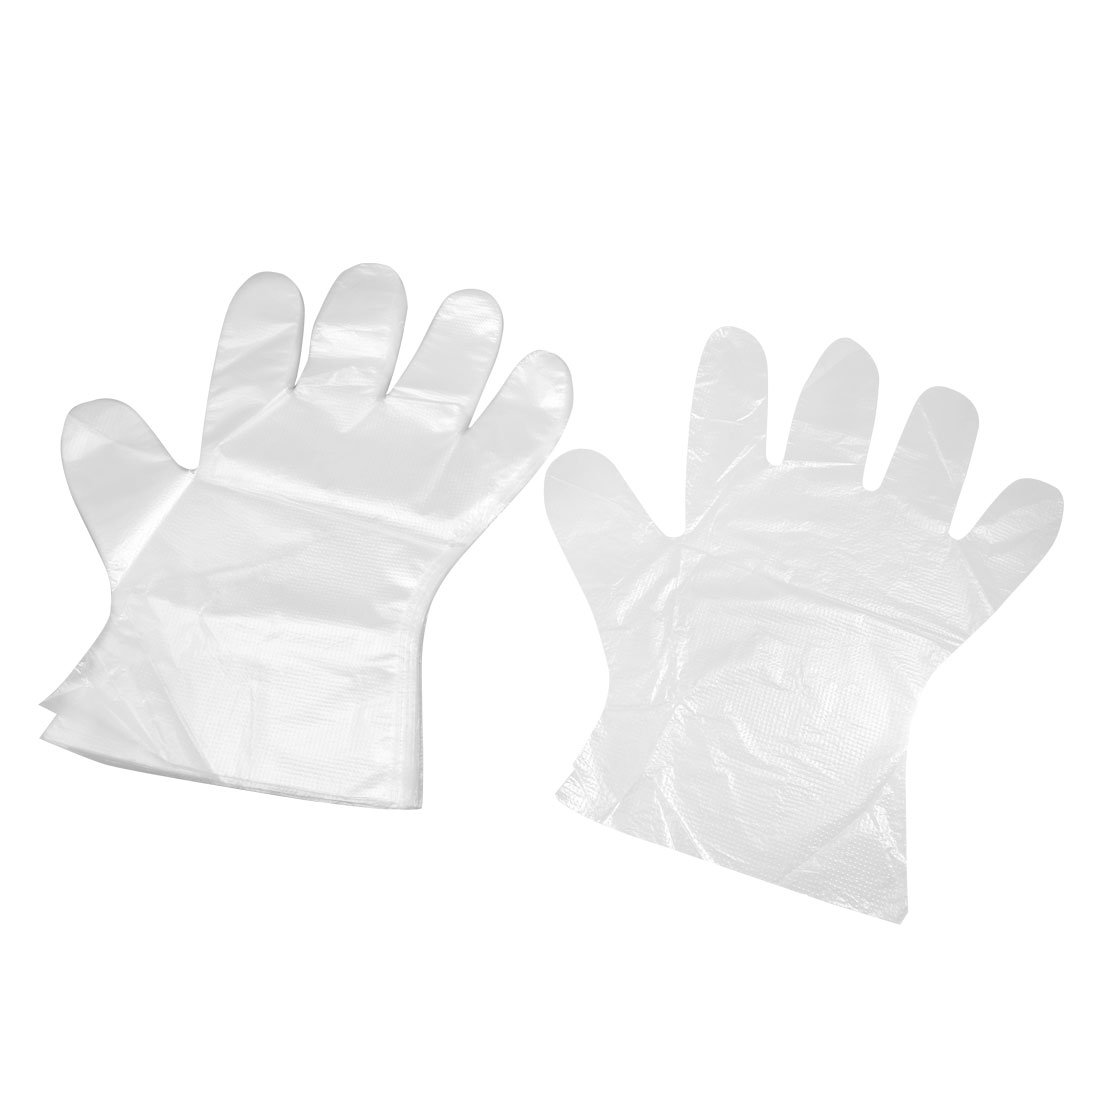 Plastic BBQ Kitchen Cooking Food Disposable Gloves 100 Pcs Clear